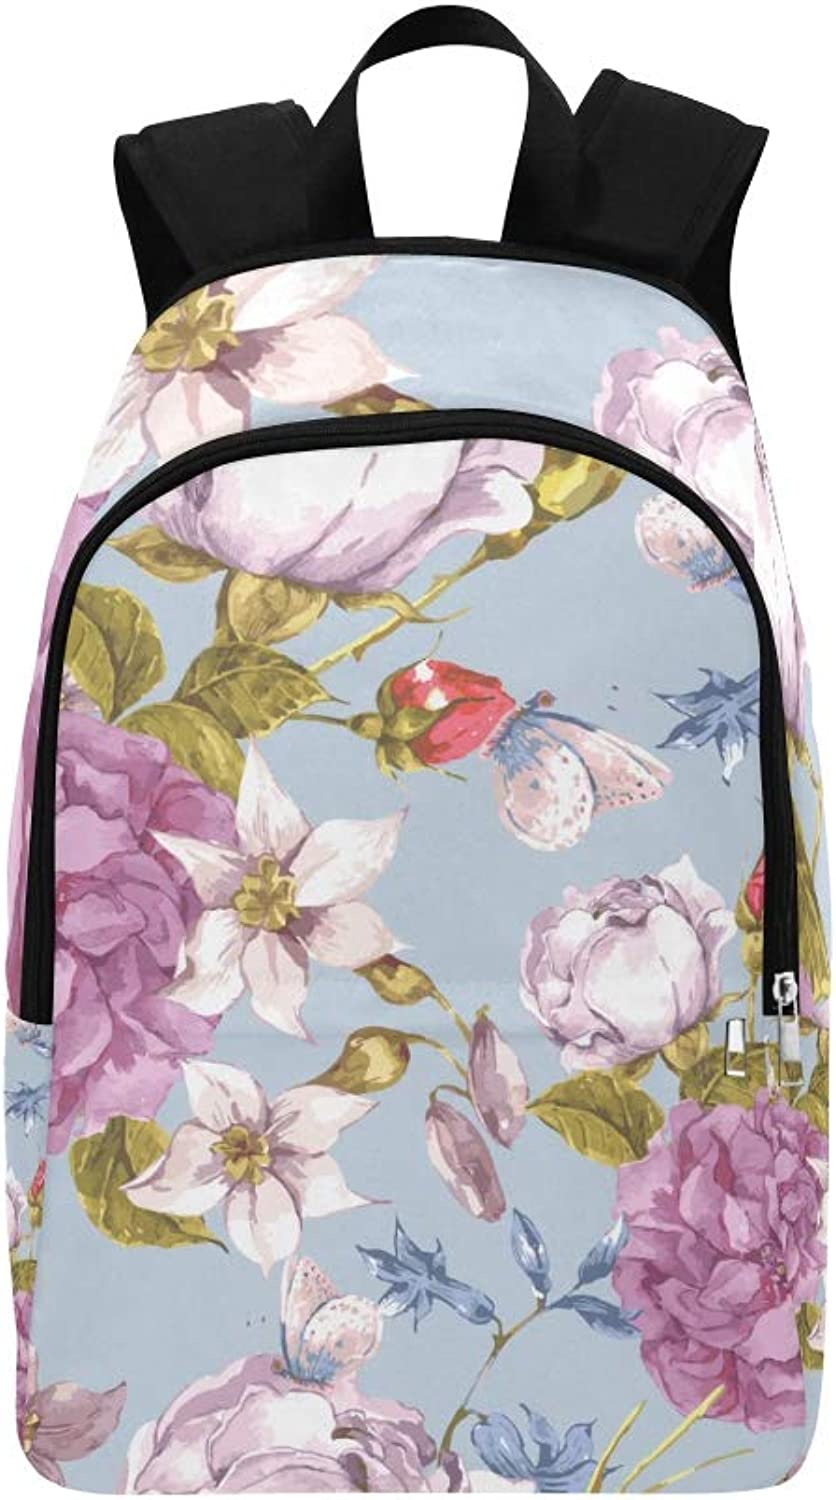 Beautiful Birds and Flowers Hand Drawn Watercolor Casual Daypack Travel Bag College School Backpack for Mens and Women